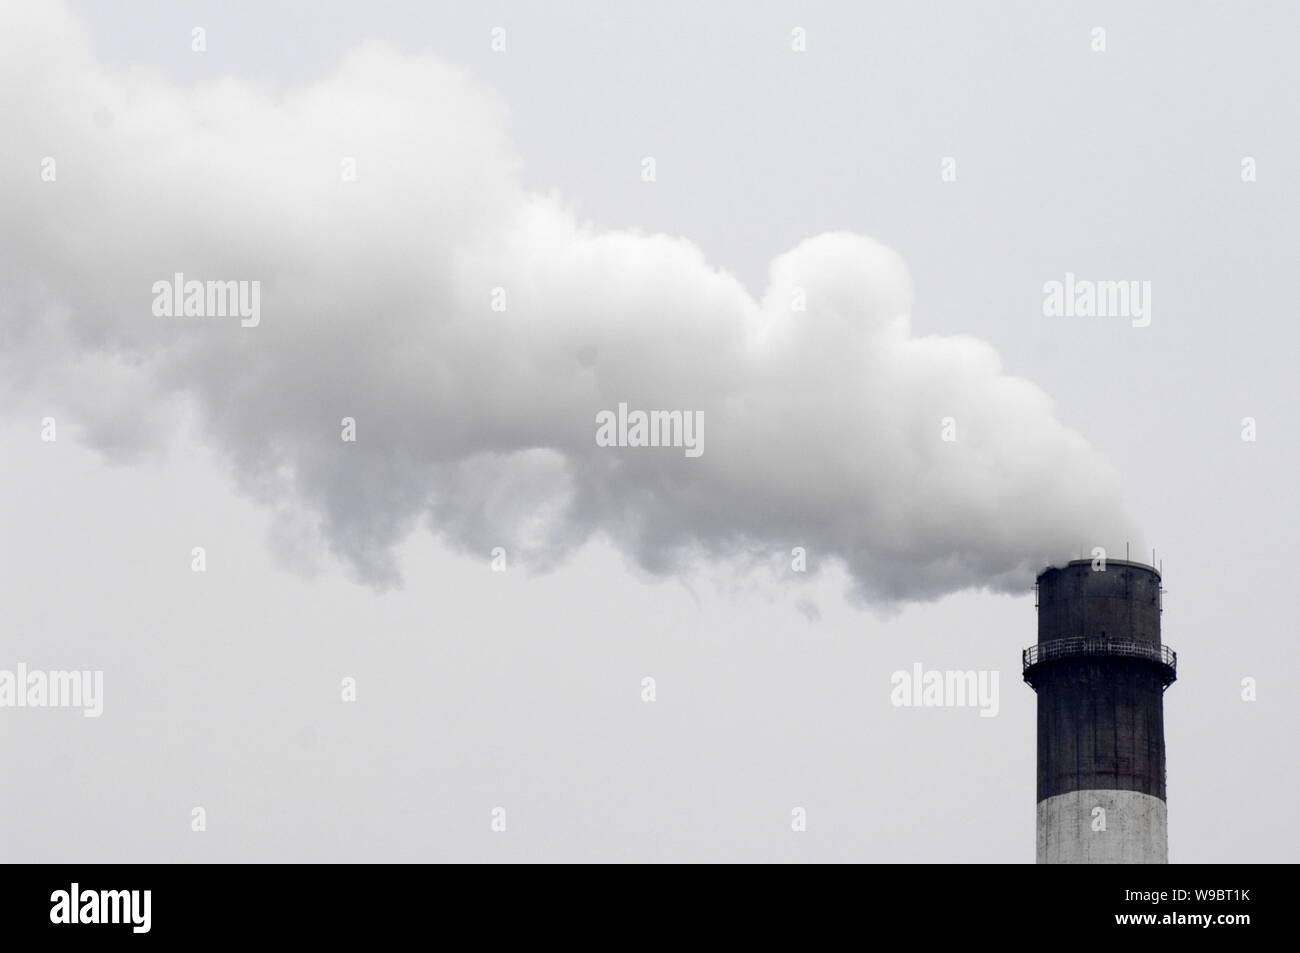 FILE--Smoke is seen emitted from a chimney of a heat power